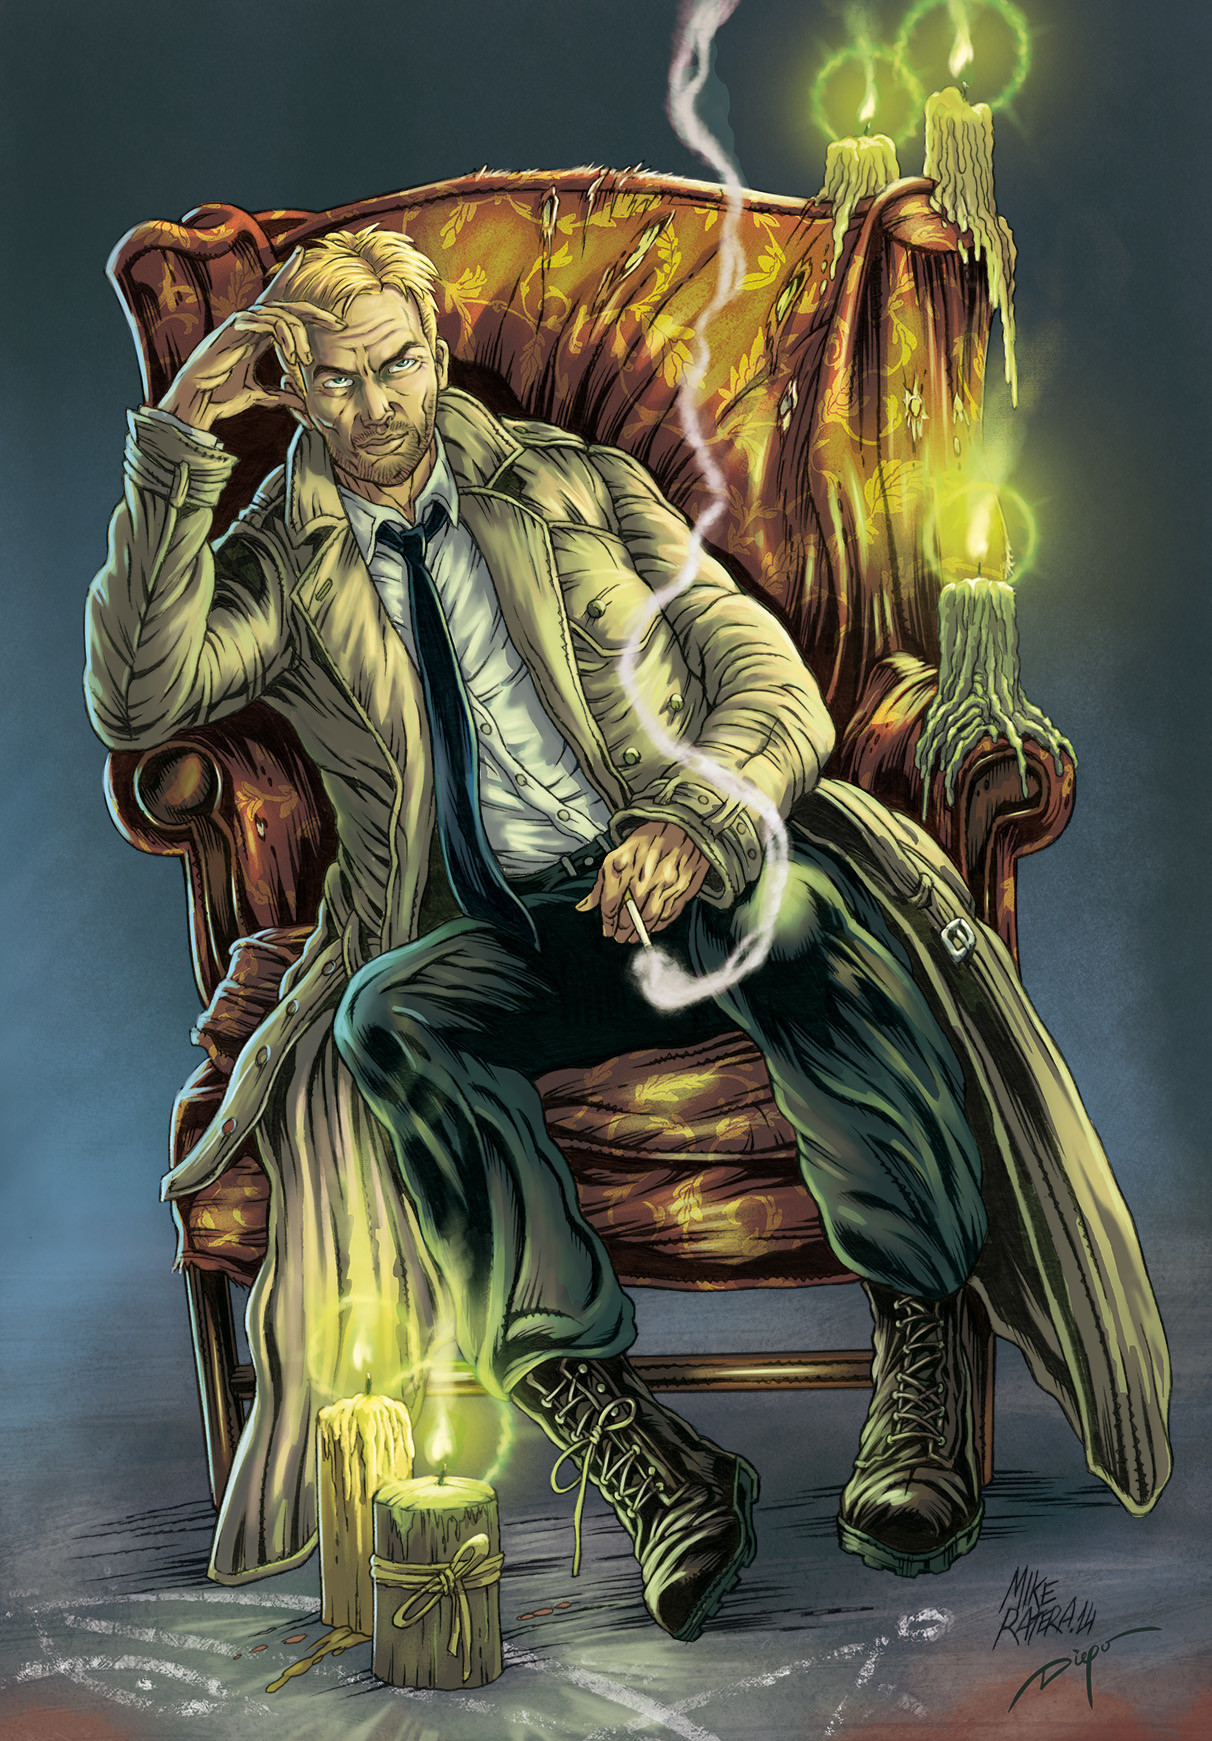 Mike ratera john constantine color